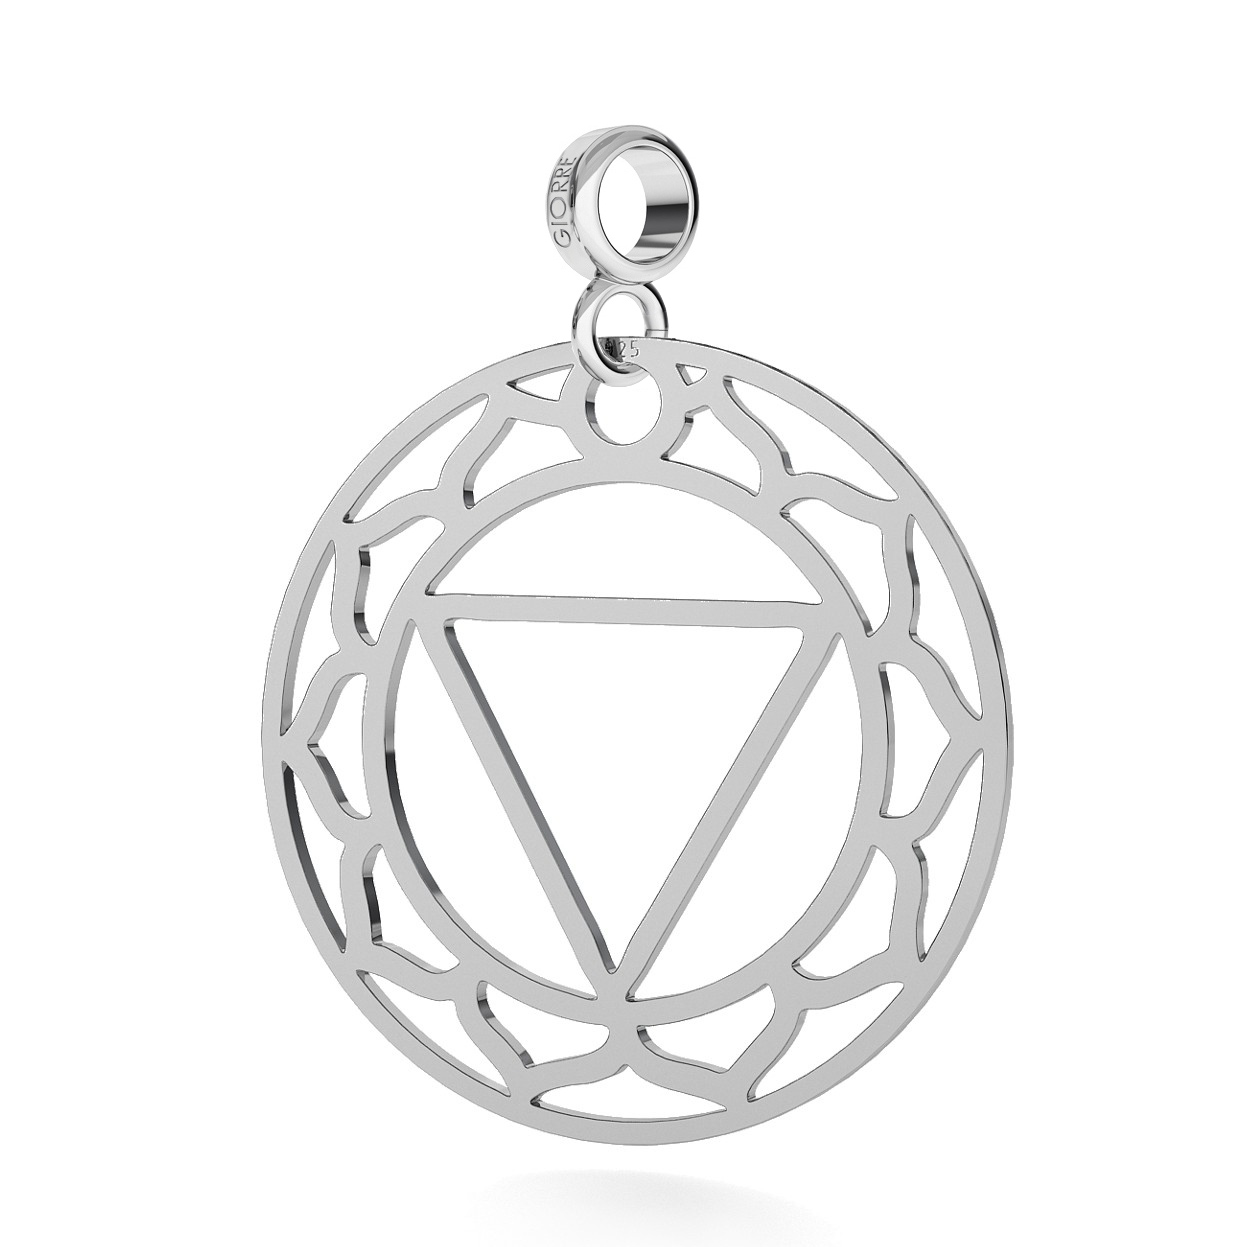 CHARM 72, NAVEL CHAKRA, STERLING SILVER (925) RHODIUM OR GOLD PLATED